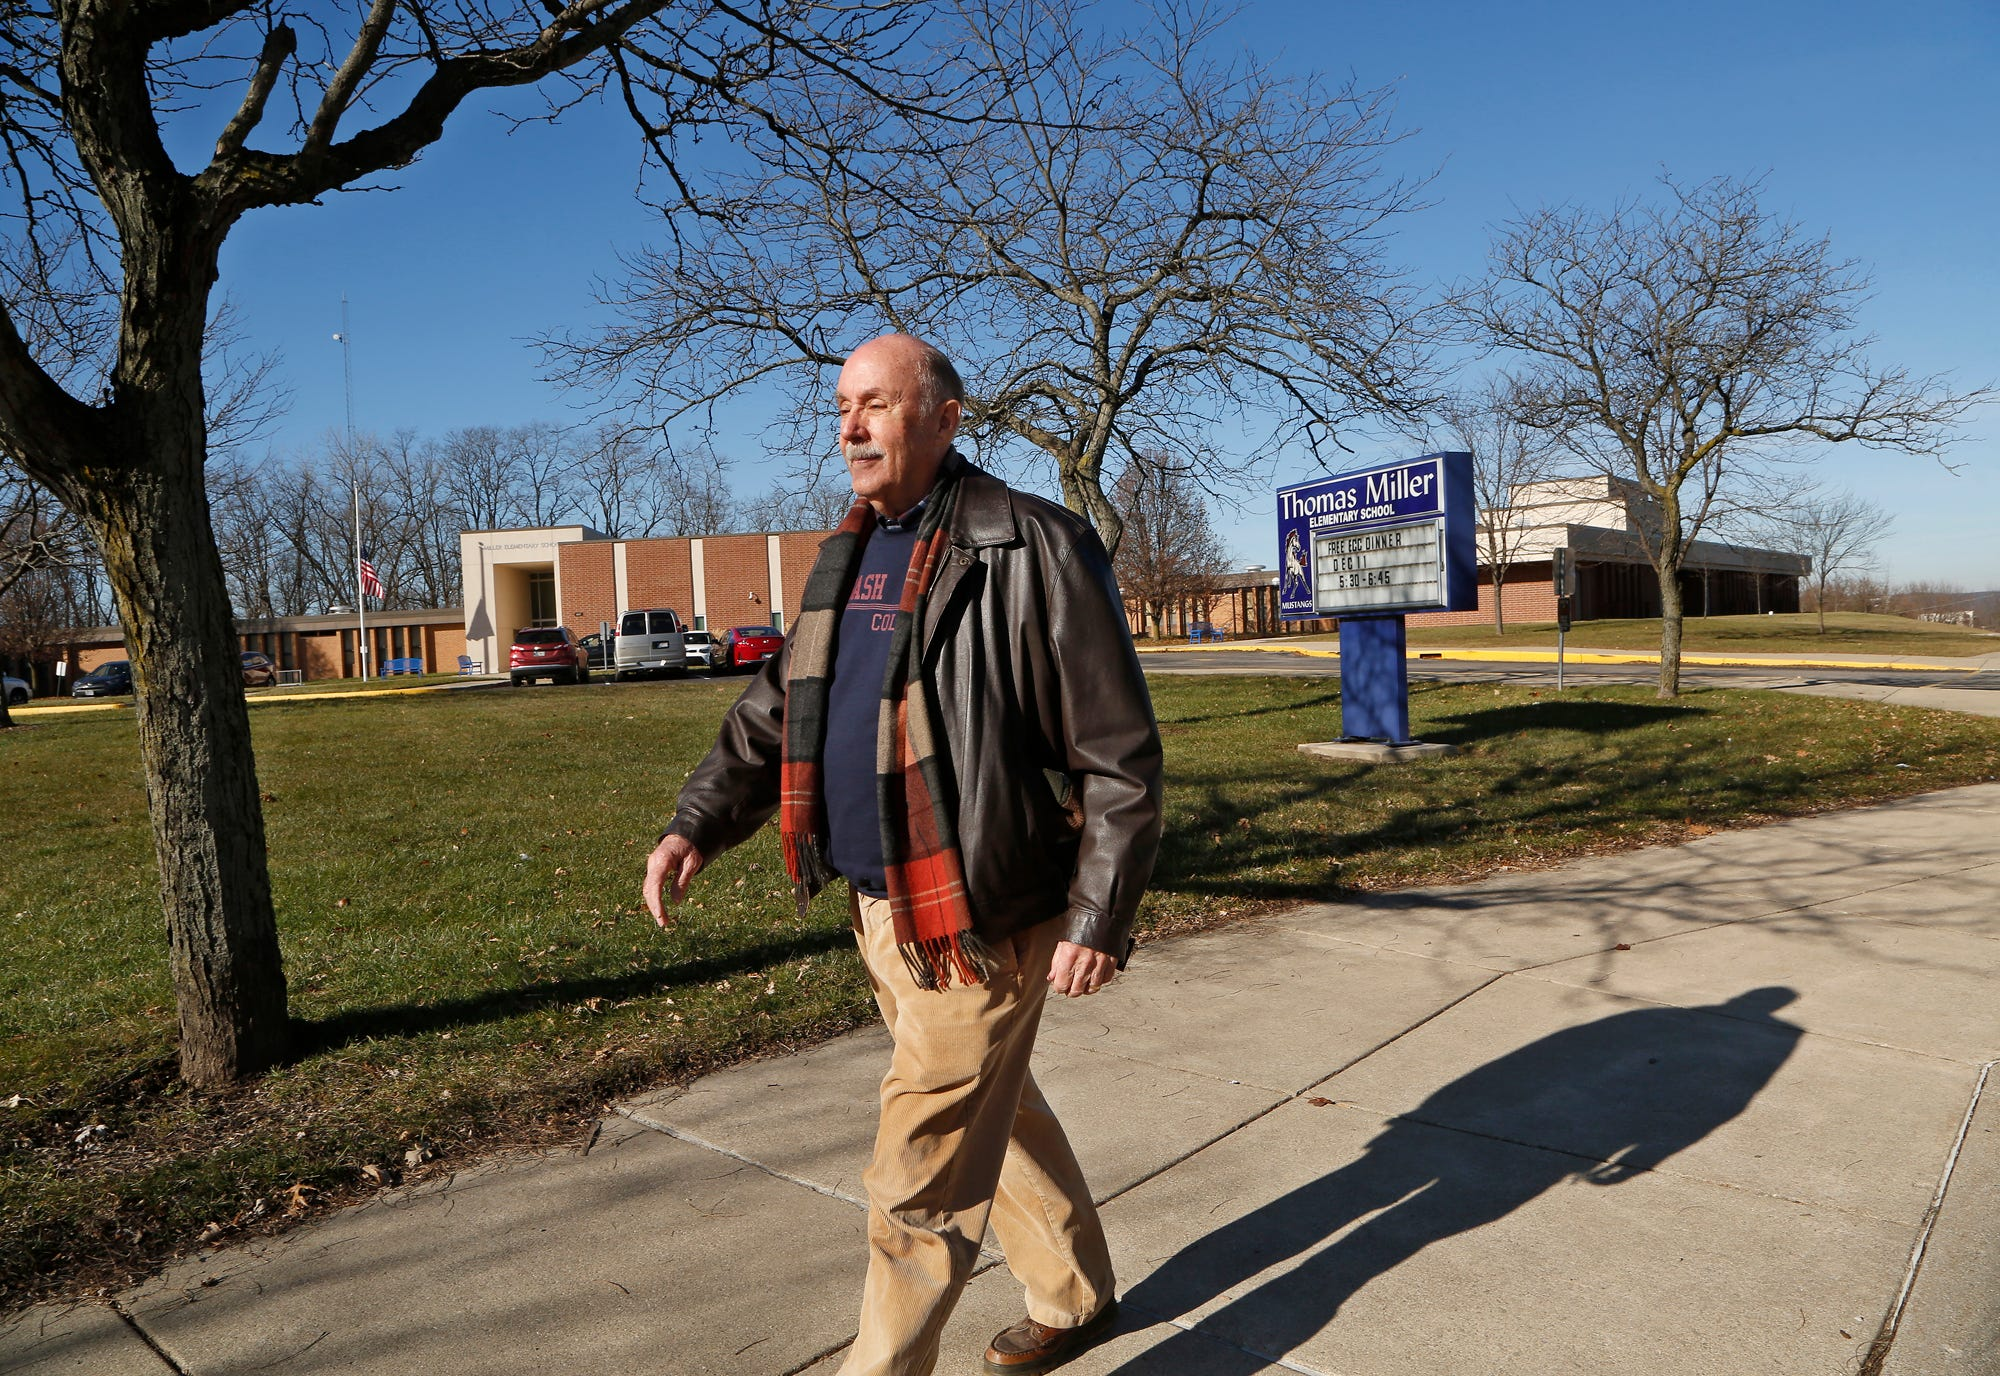 Attorney Kent Moore strolls past Miller Elementary School Tuesday, December 18, 2018, at 700 S. 4th Street in Lafayette. Moore is retiring after serving 44 years as the attorney representing Lafayette School Corp and 50 years in private practice. All five of Miller's children attended Miller Elementary.